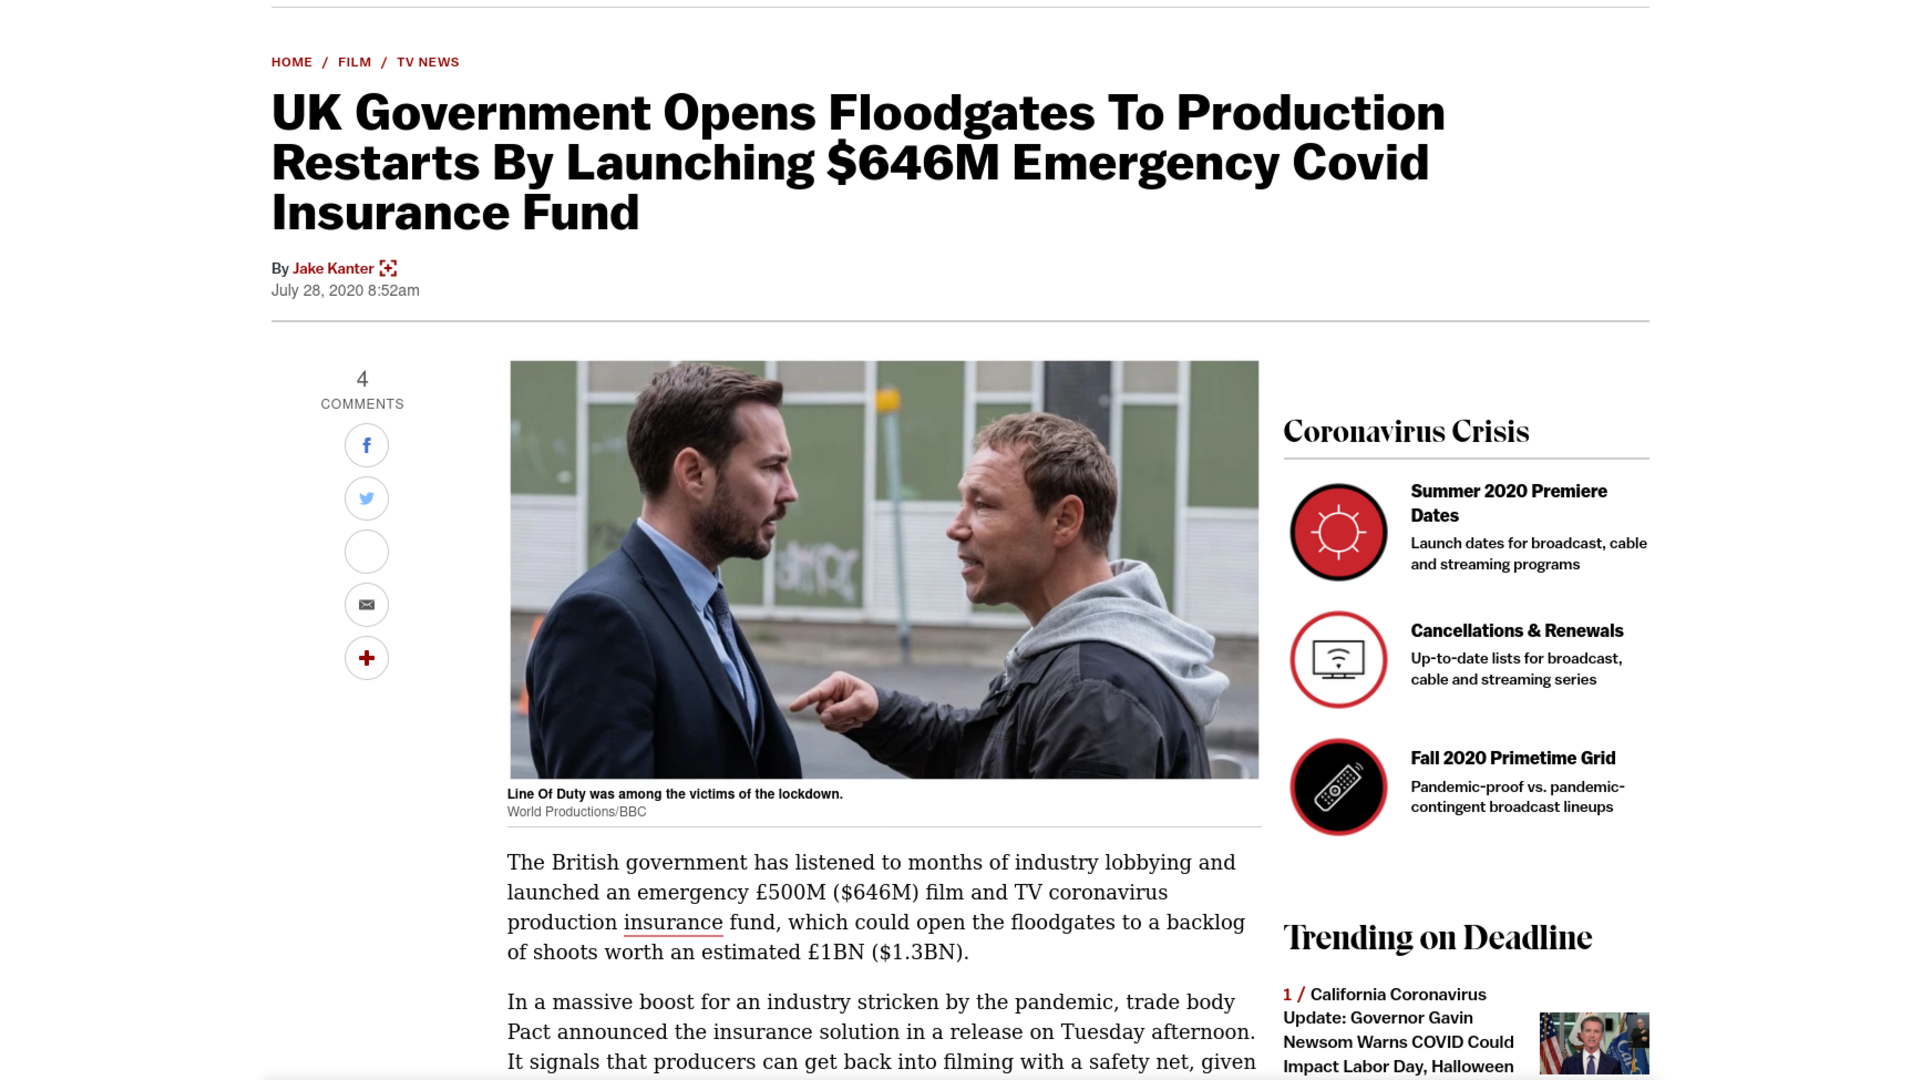 Fairness Rocks News UK Government Opens Floodgates To Production Restarts By Launching $646M Emergency Covid Insurance Fund